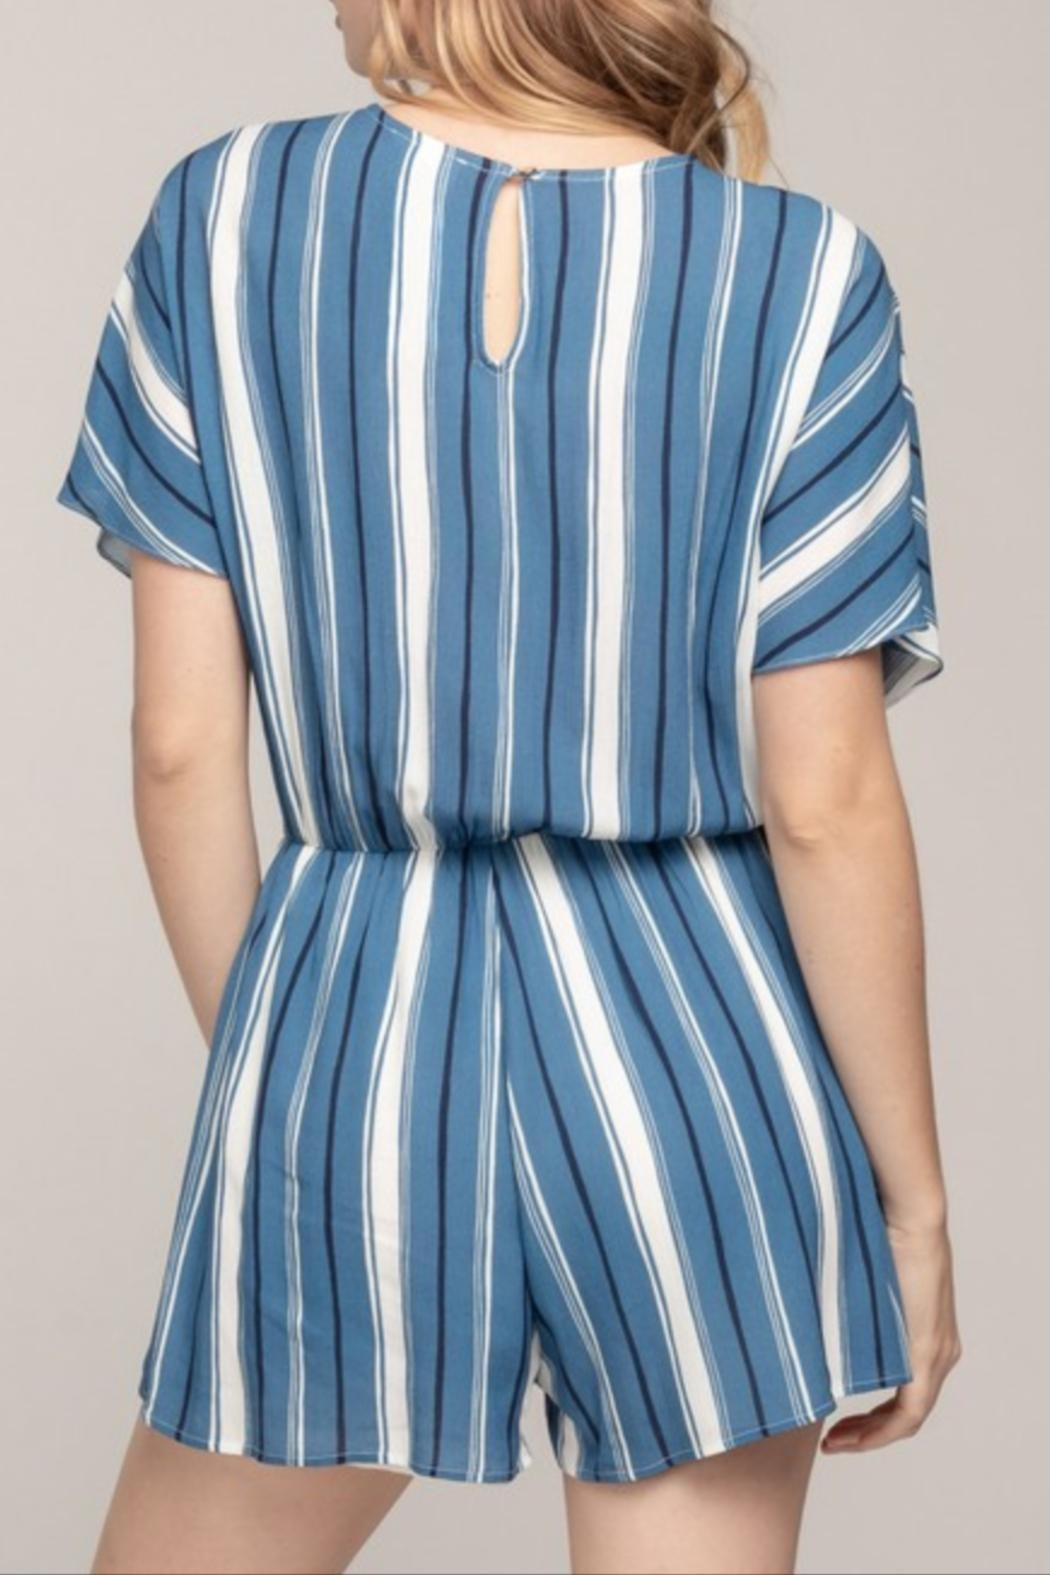 49c5b3847393 Everly V-Neck Striped Romper from California by Apricot Lane ...